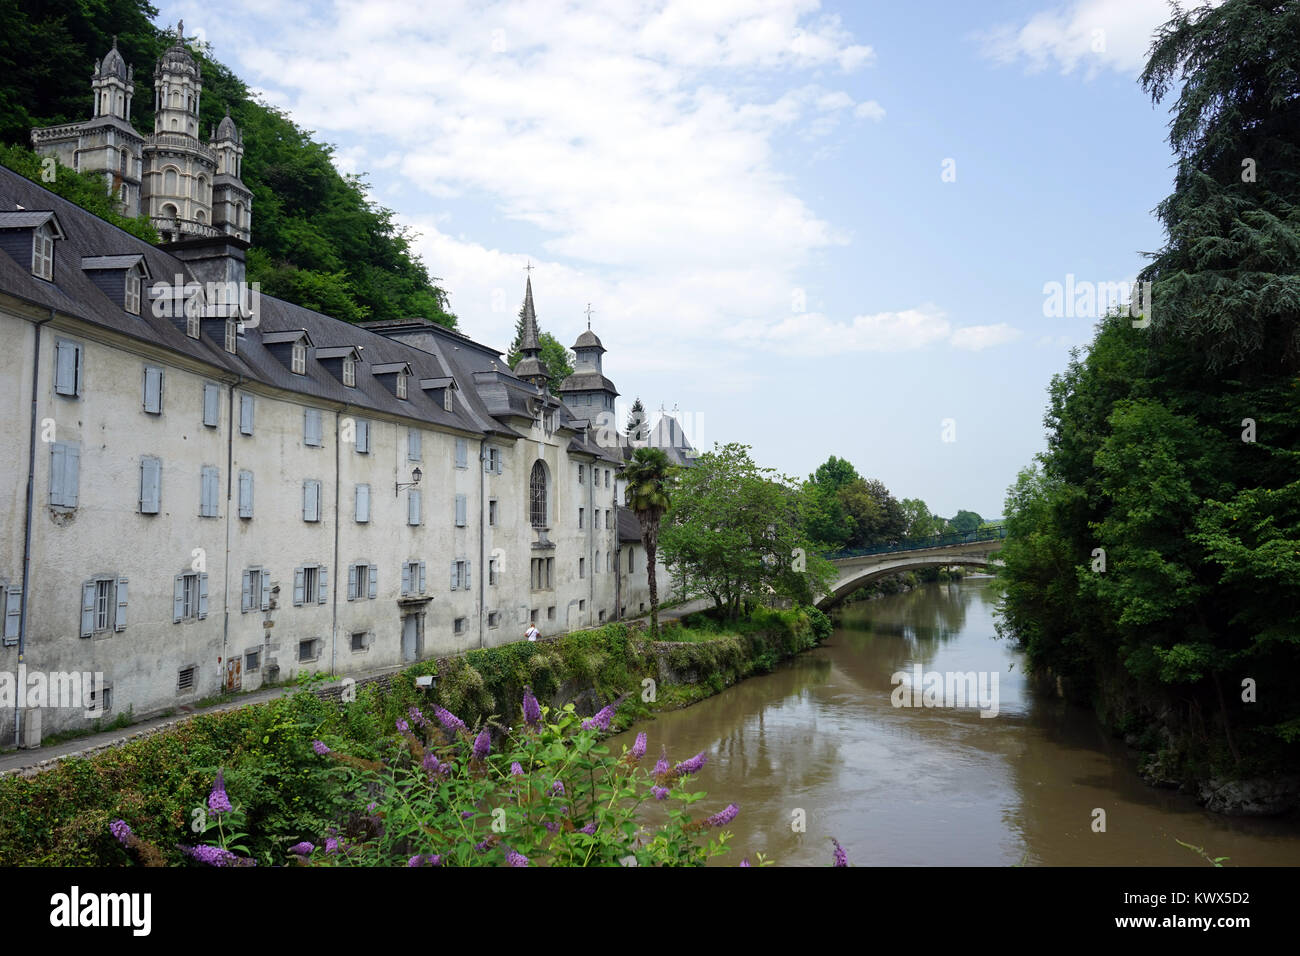 LESTELLE-BETHARRAM, FRANCE - CIRCA JULY 2015 Facade of monastery and bridge on the river Stock Photo